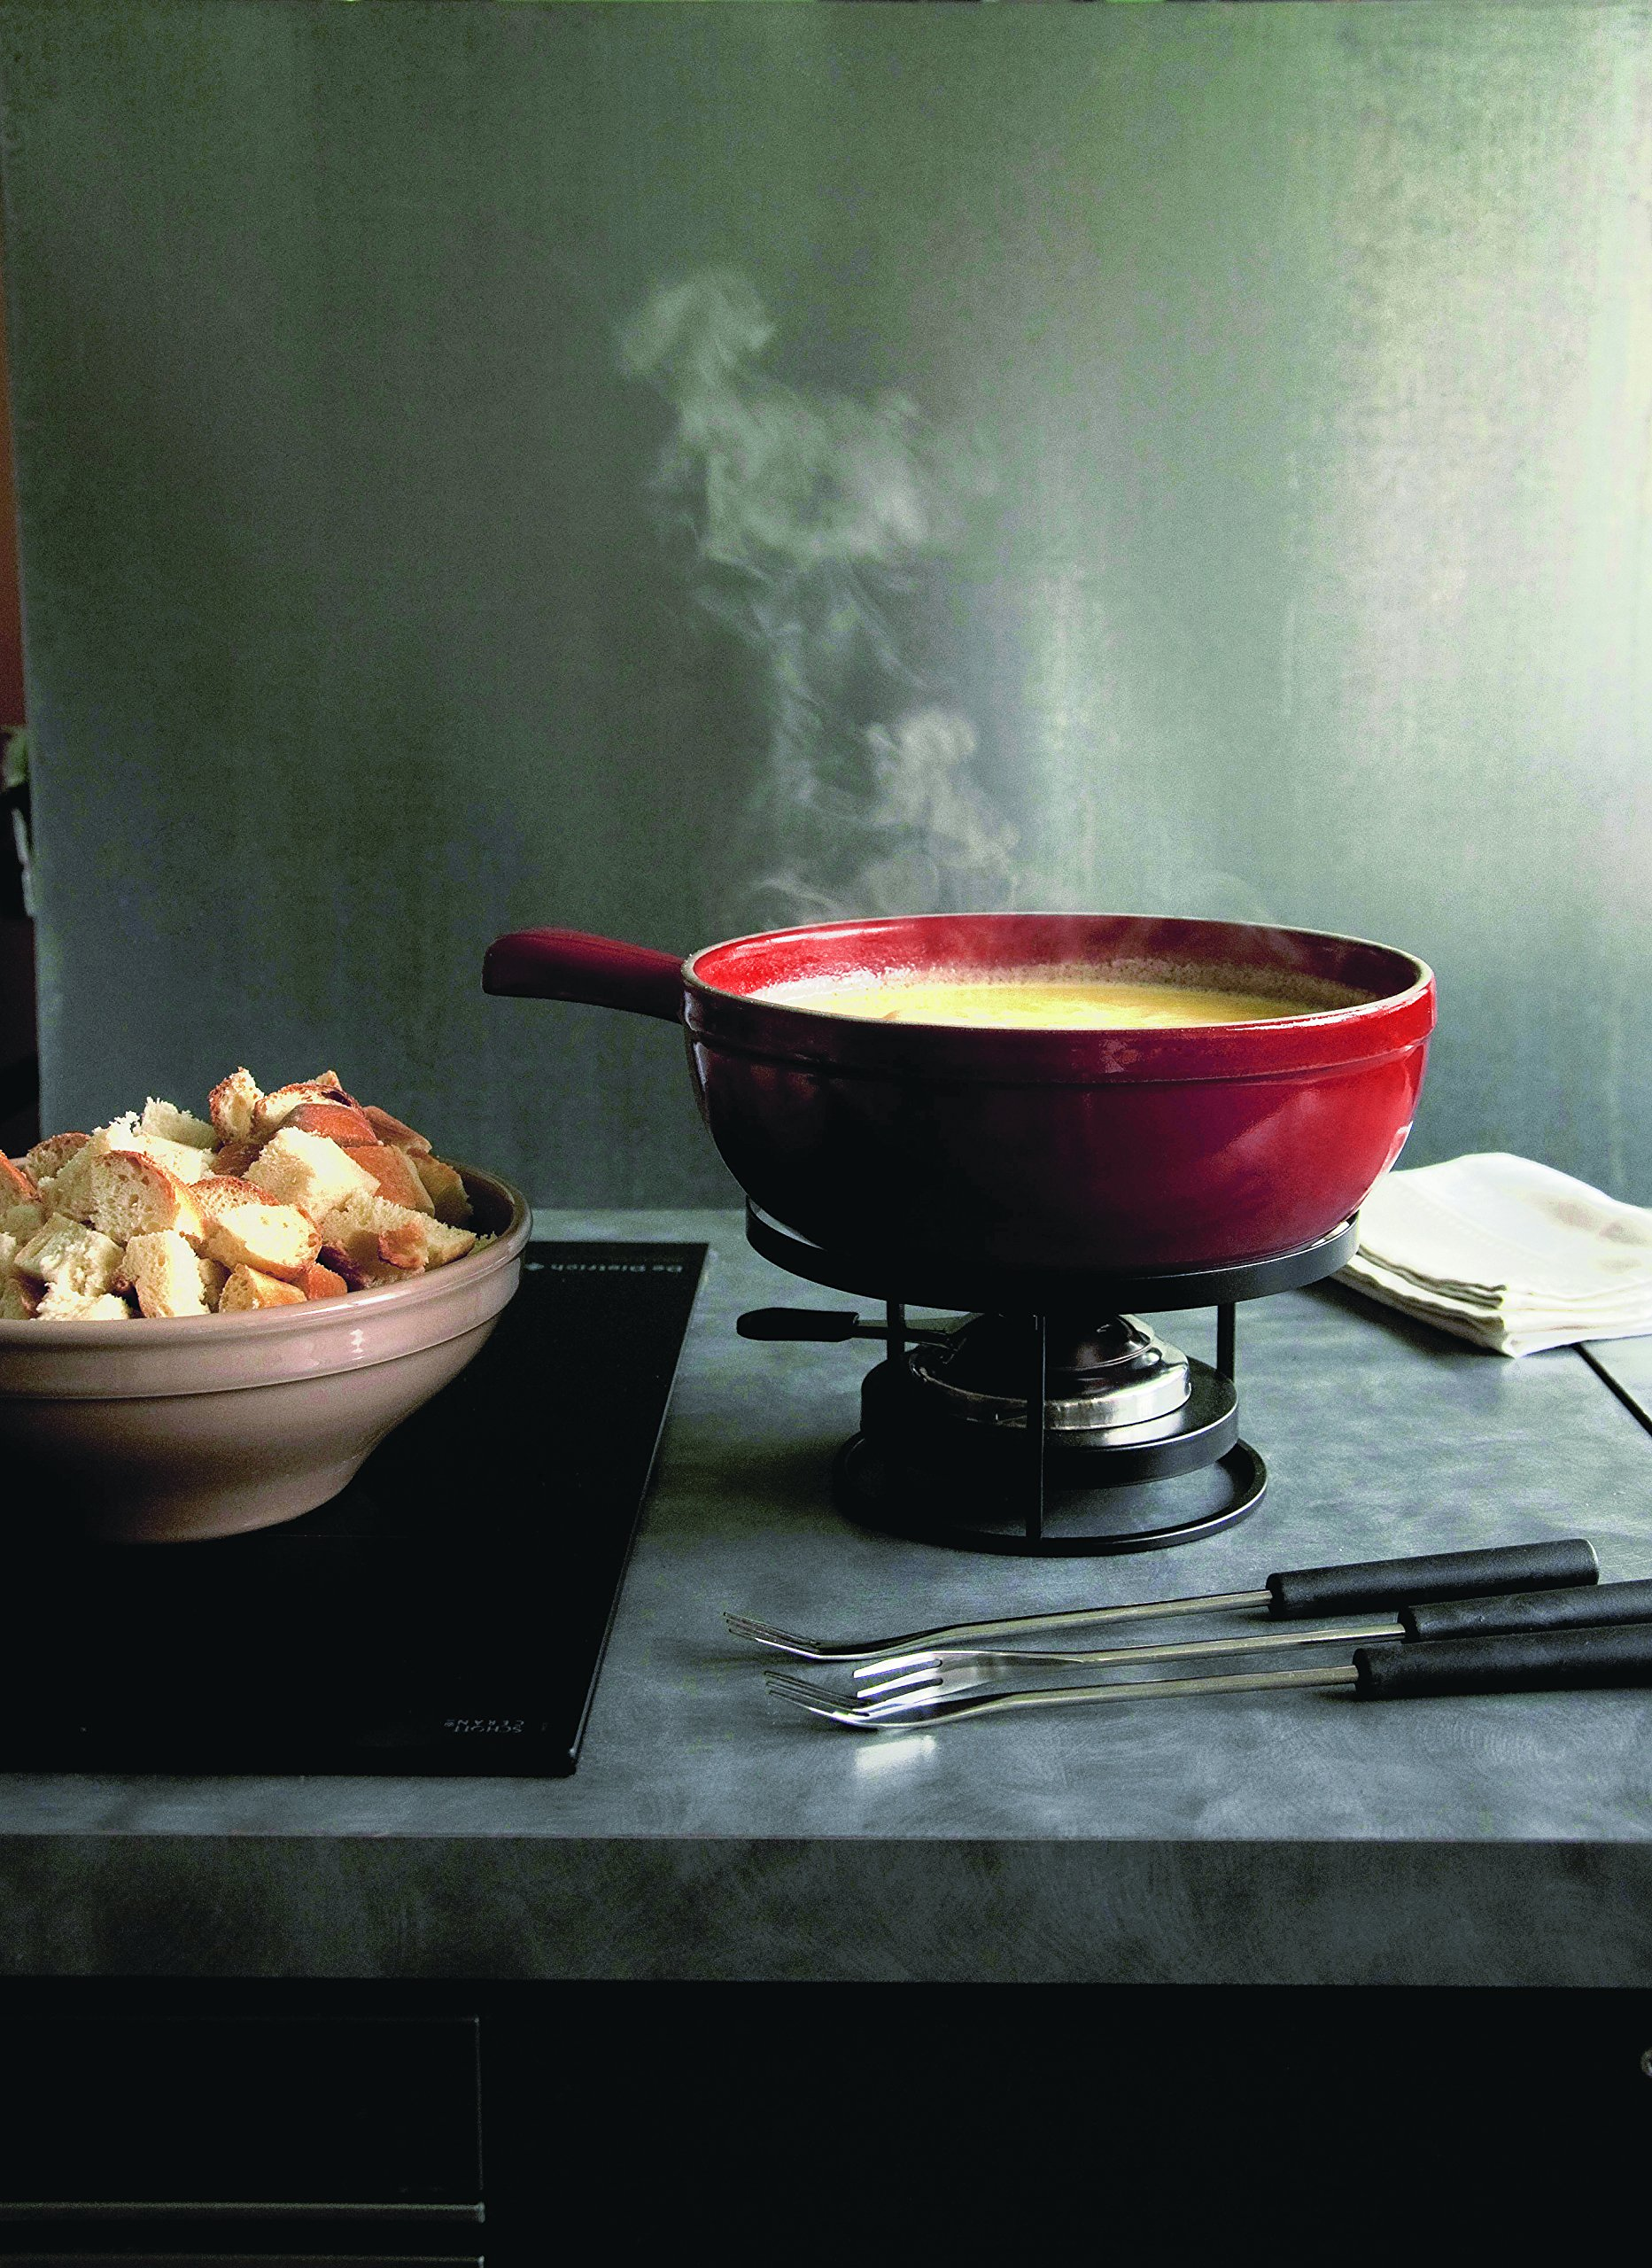 Emile Henry Made In France Flame Cheese Fondue Set, 2.6 quart, Charcoal by Emile Henry (Image #3)